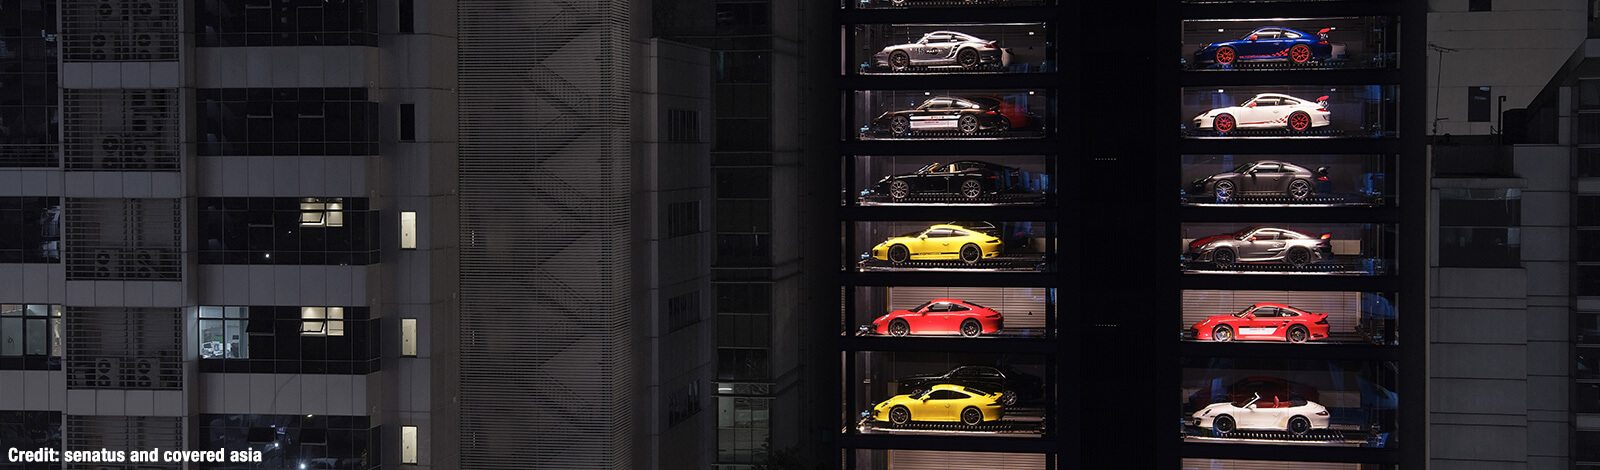 Exotic Car Vending Machine